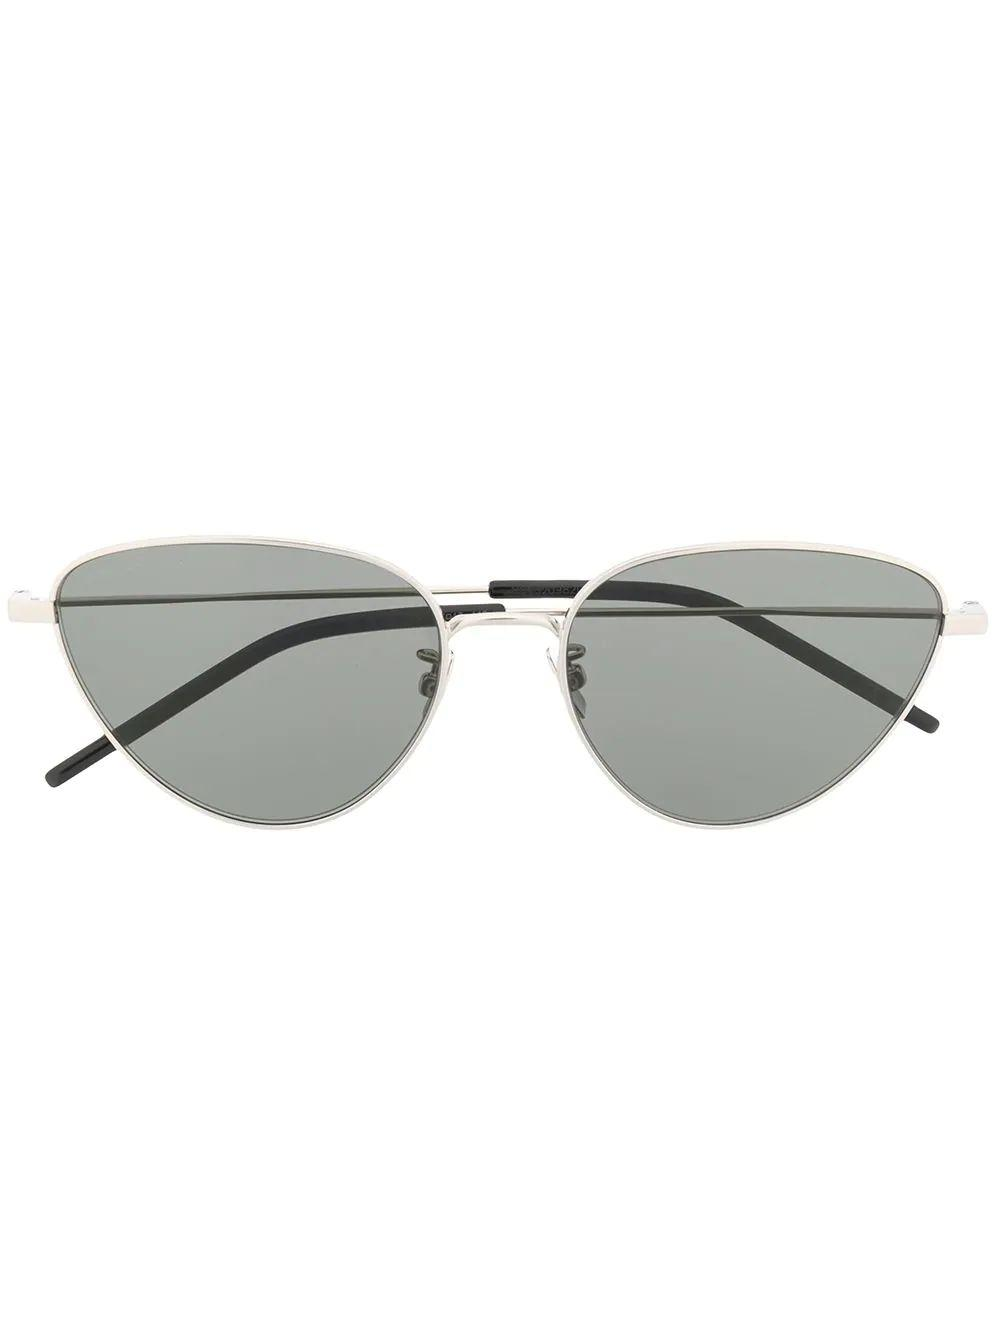 Cat Eye Silver Frame Sunglasses